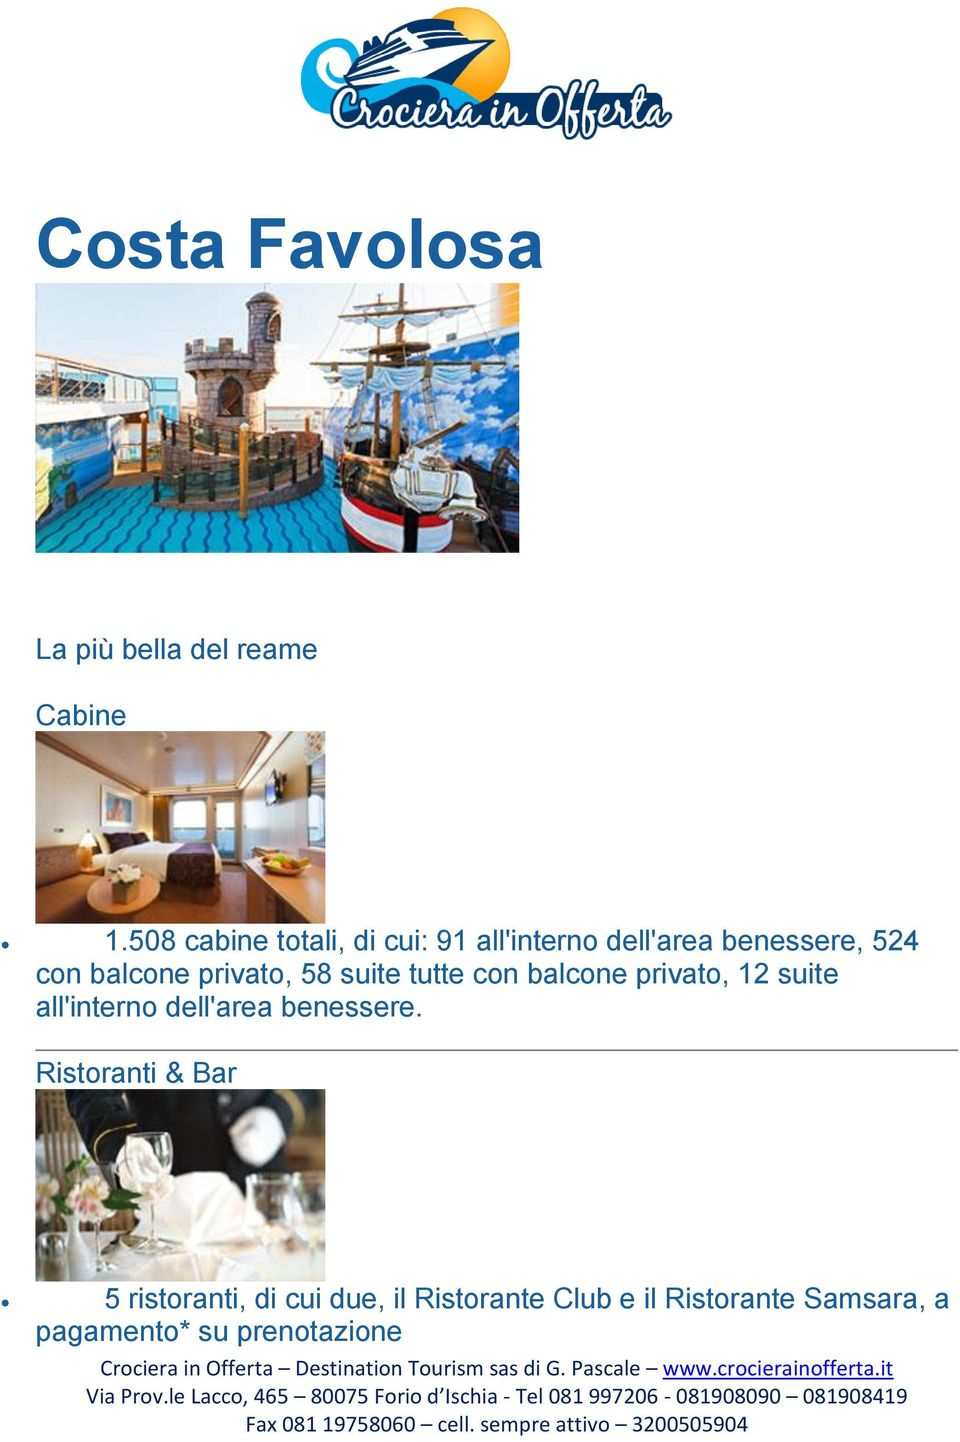 privato, 58 suite tutte con balcone privato, 12 suite all'interno dell'area